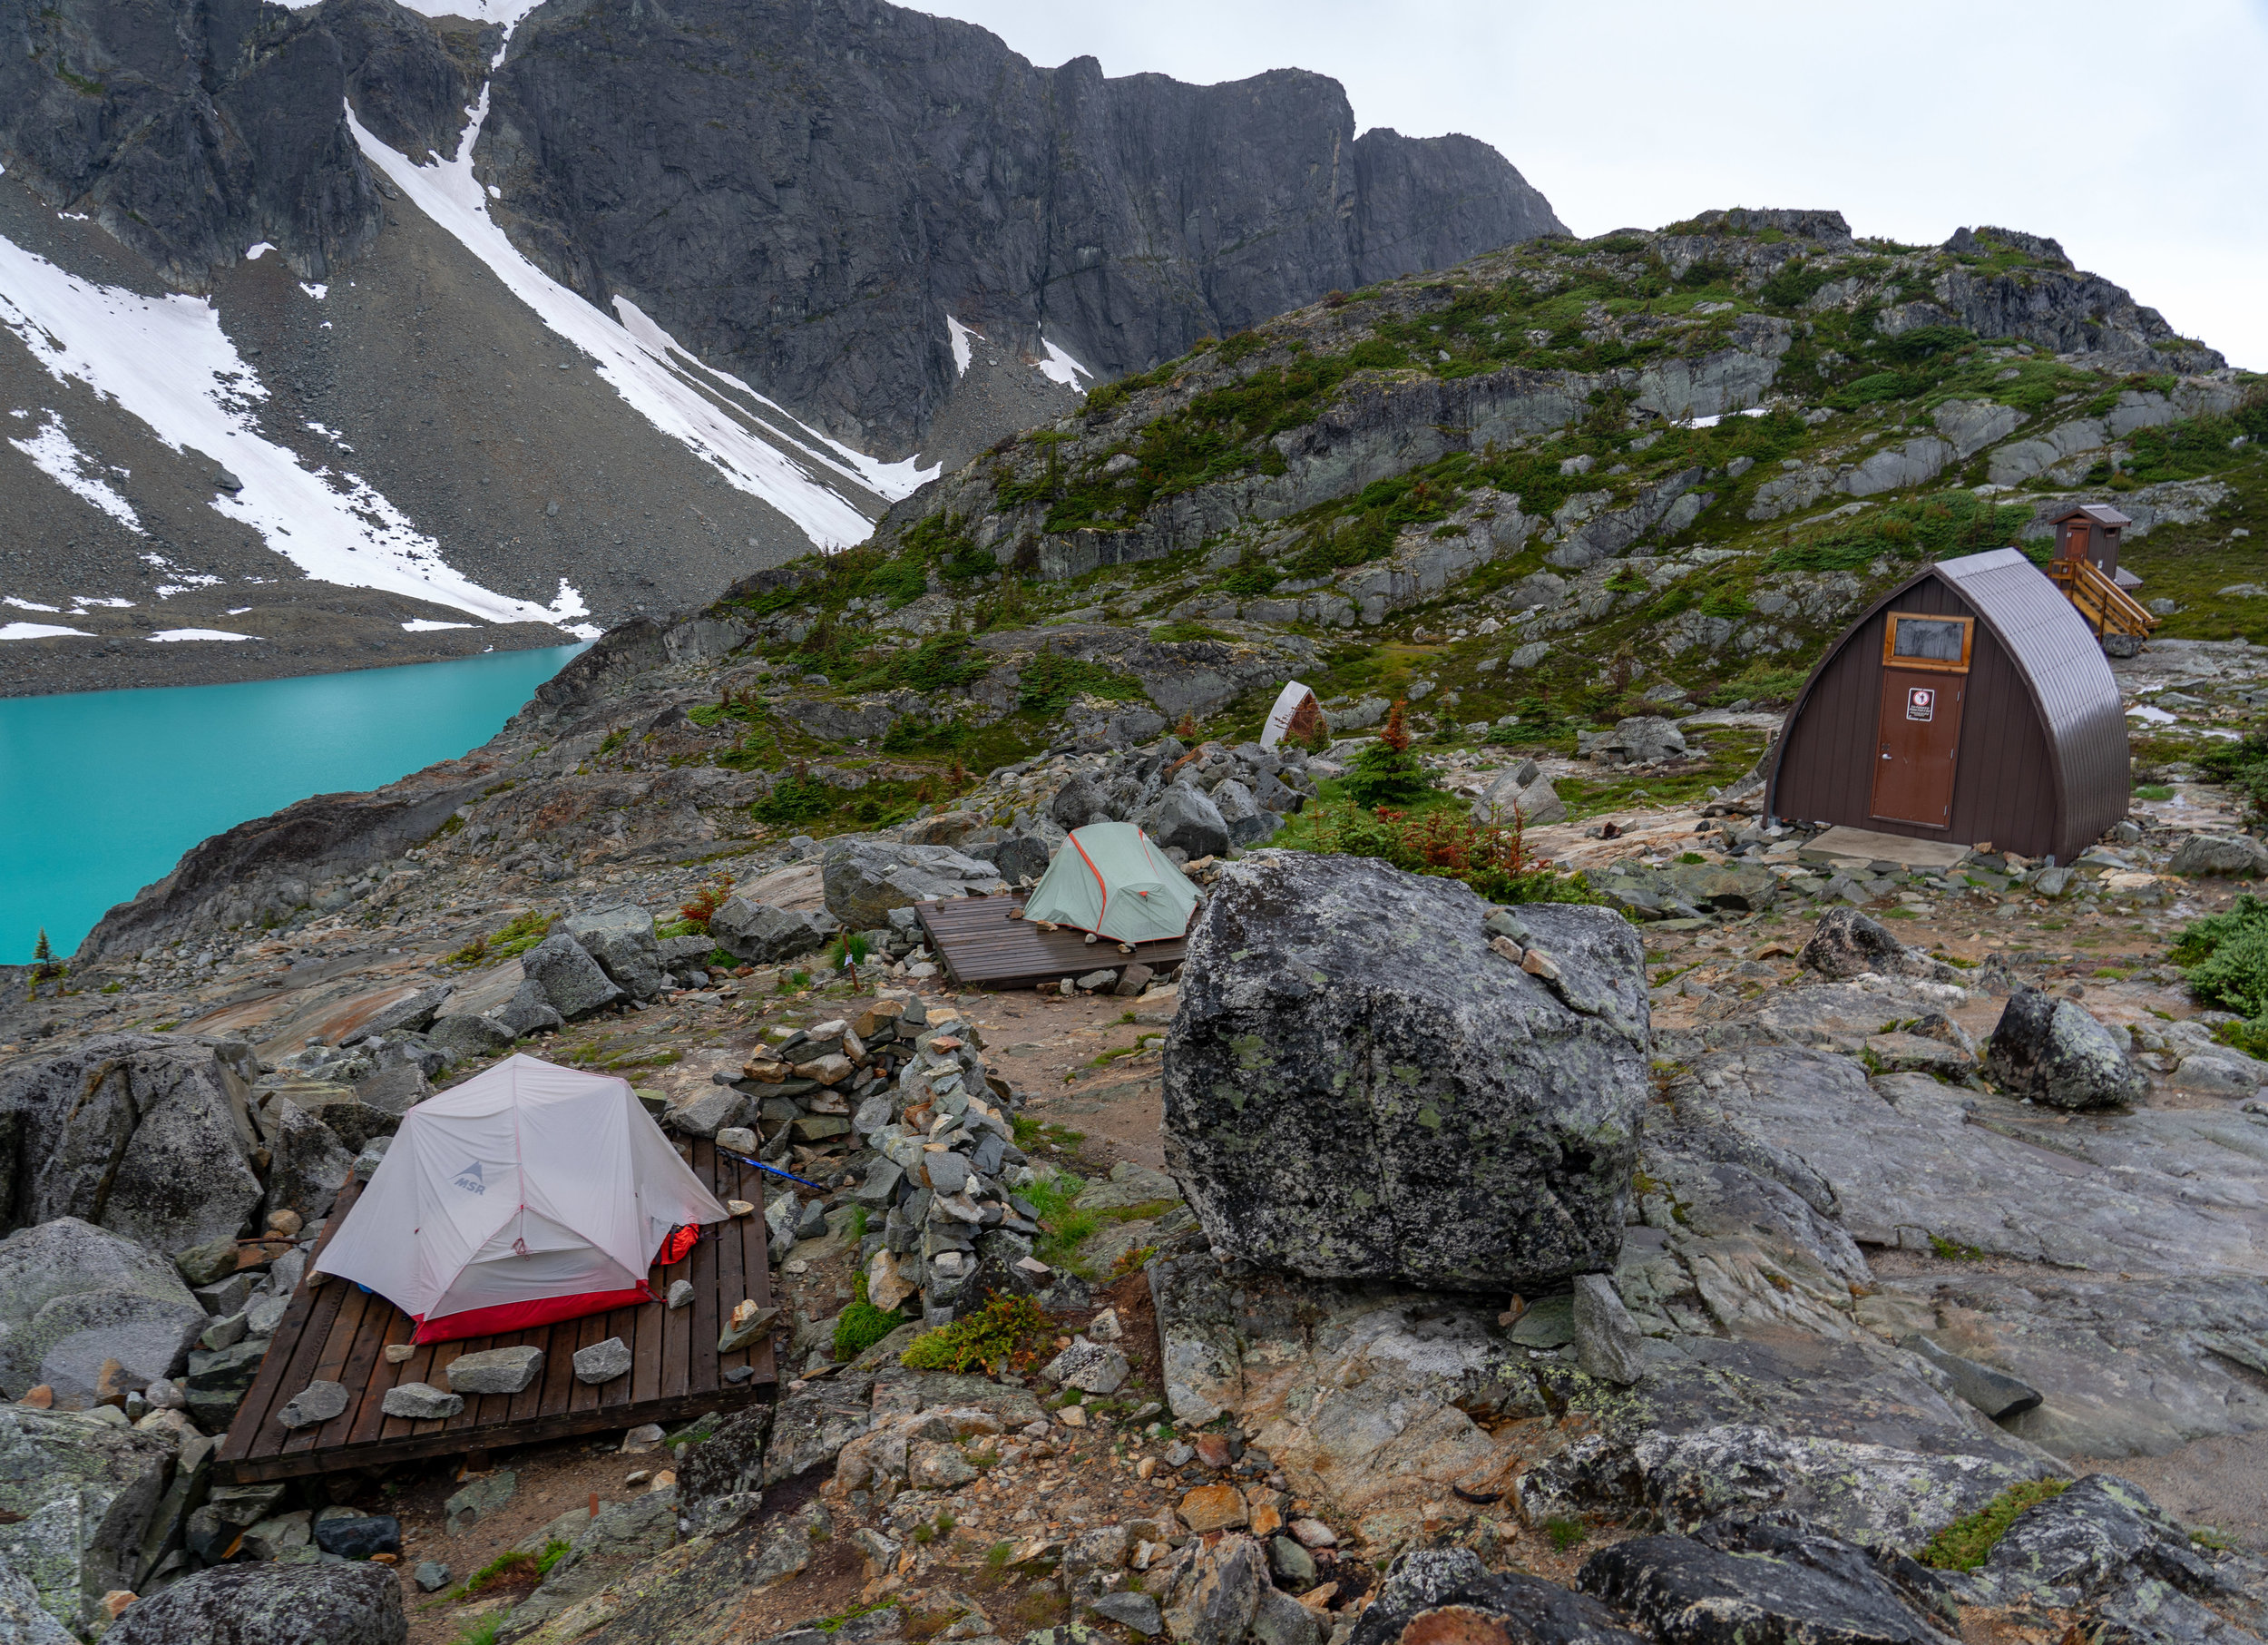 The hut and two of the tent pads at Wedgemount Lake.